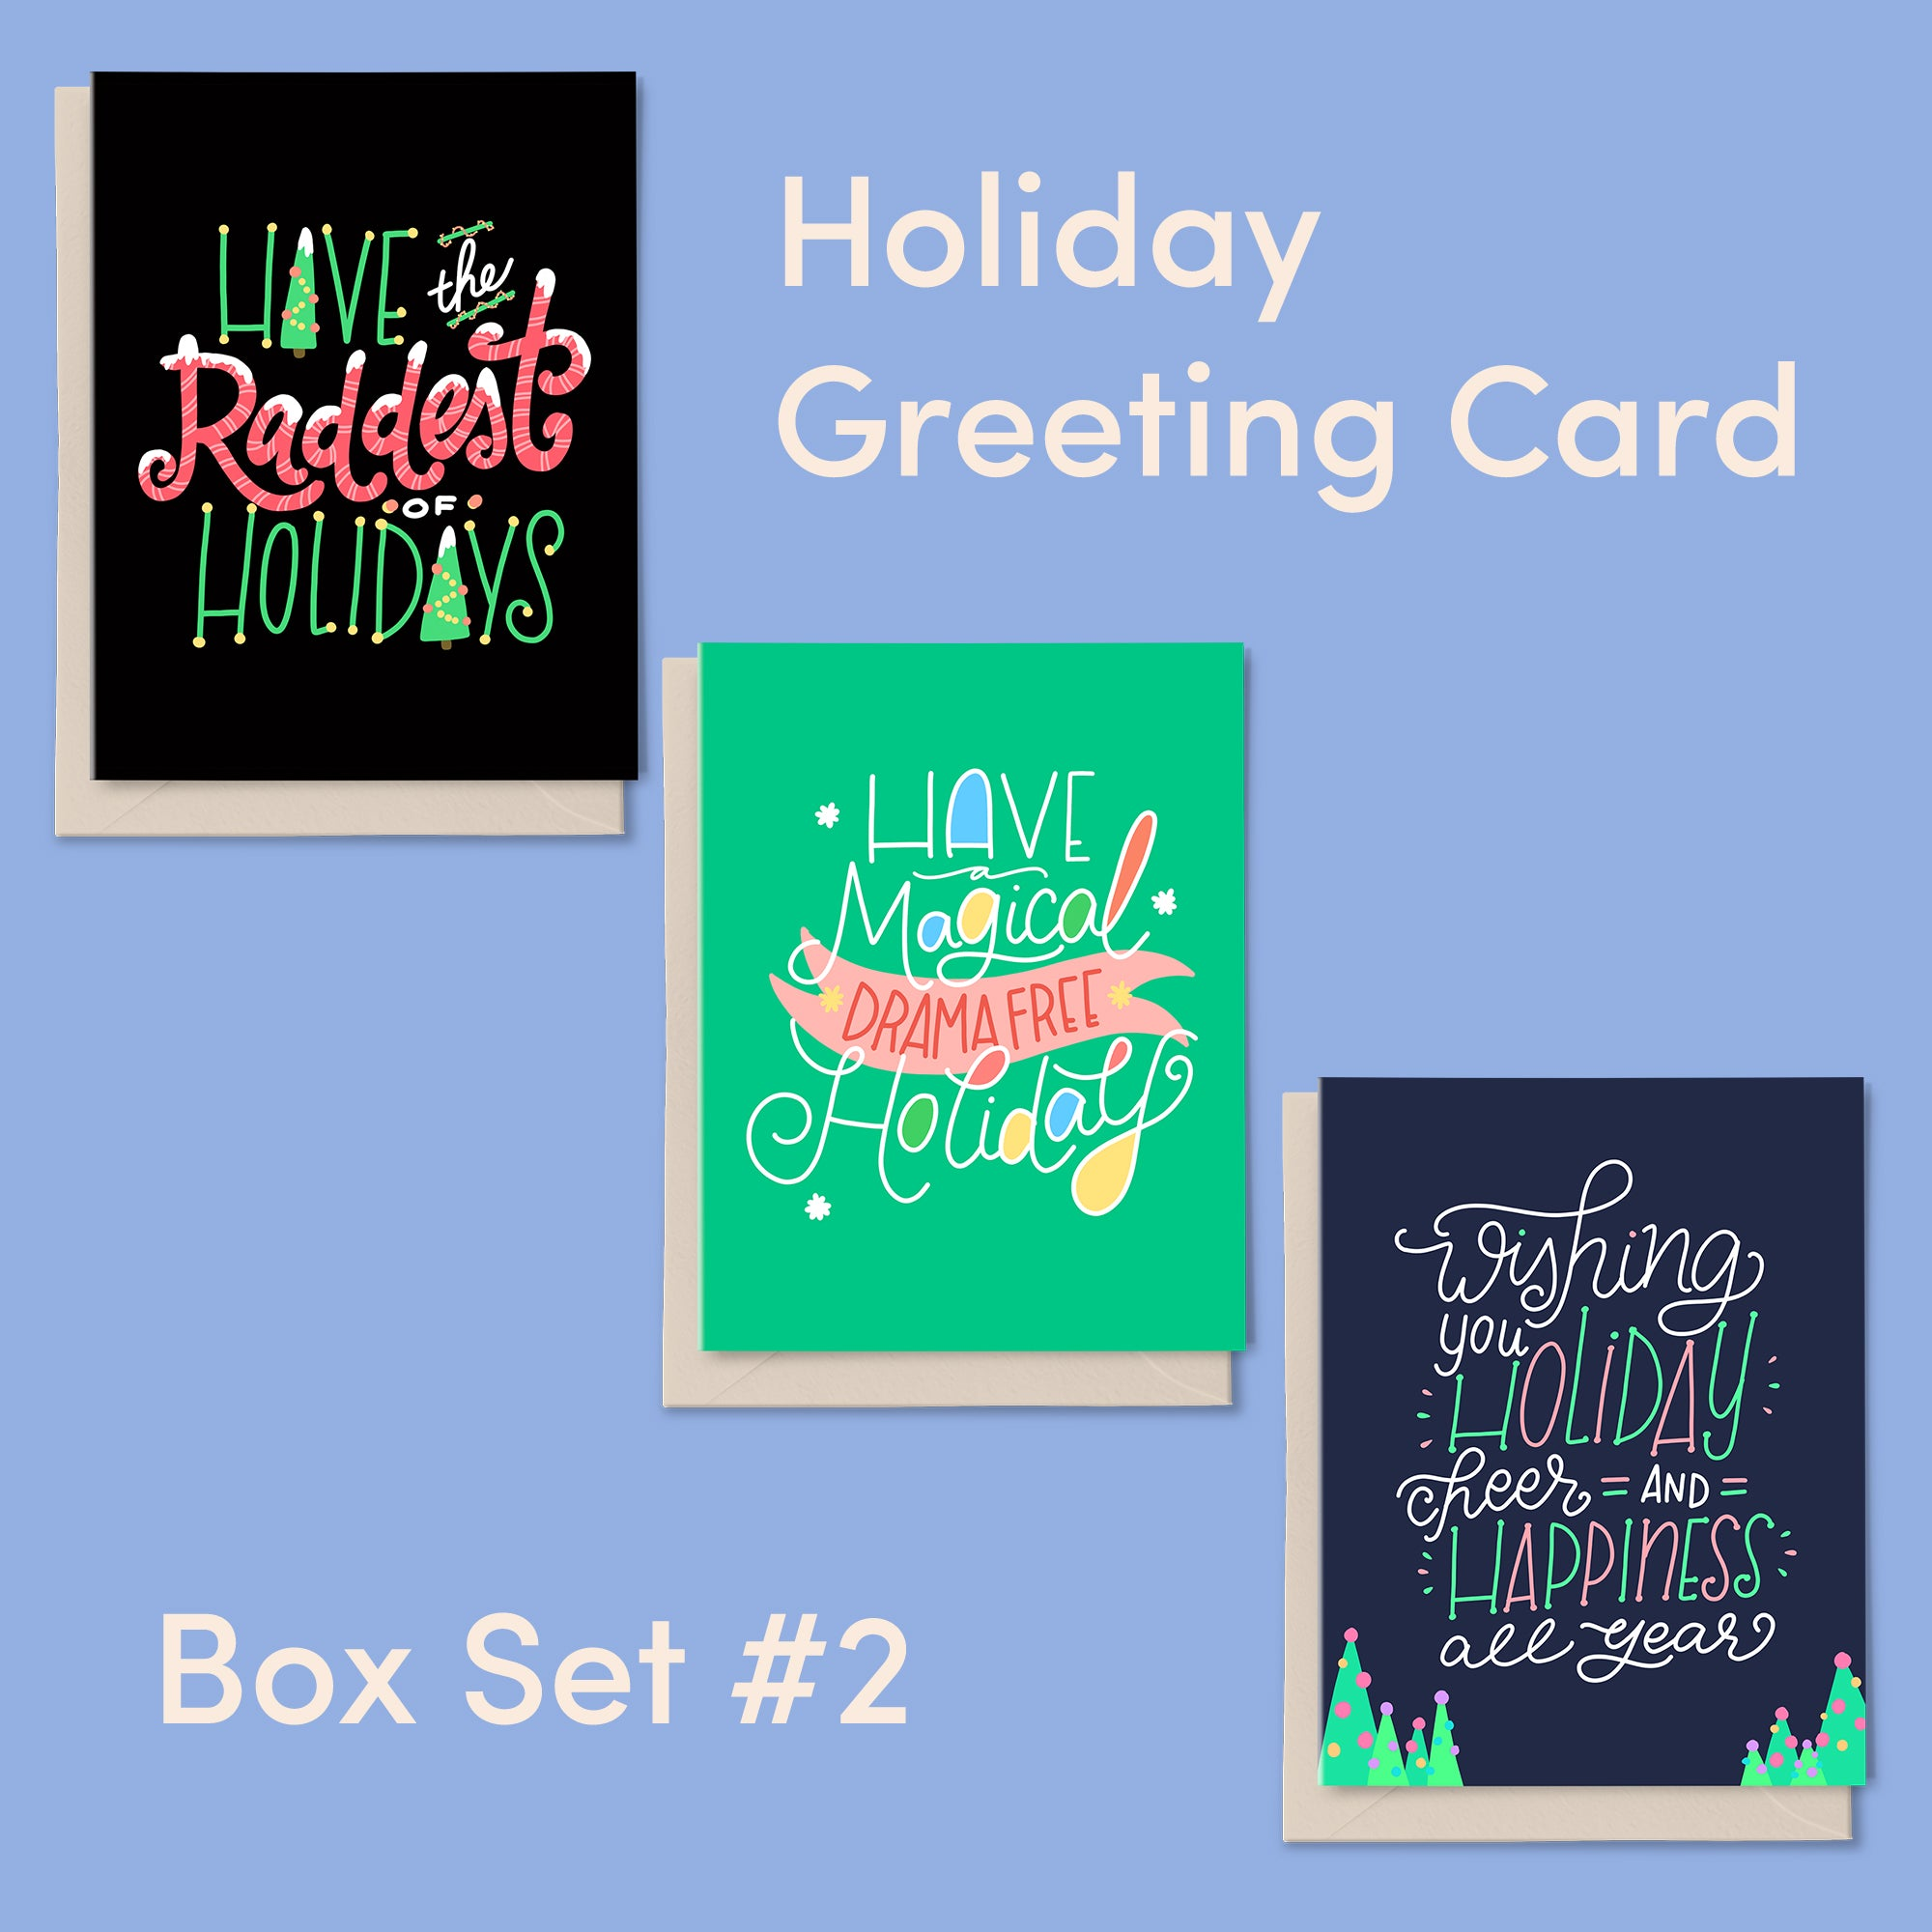 Holiday Greeting Card Box Set #2